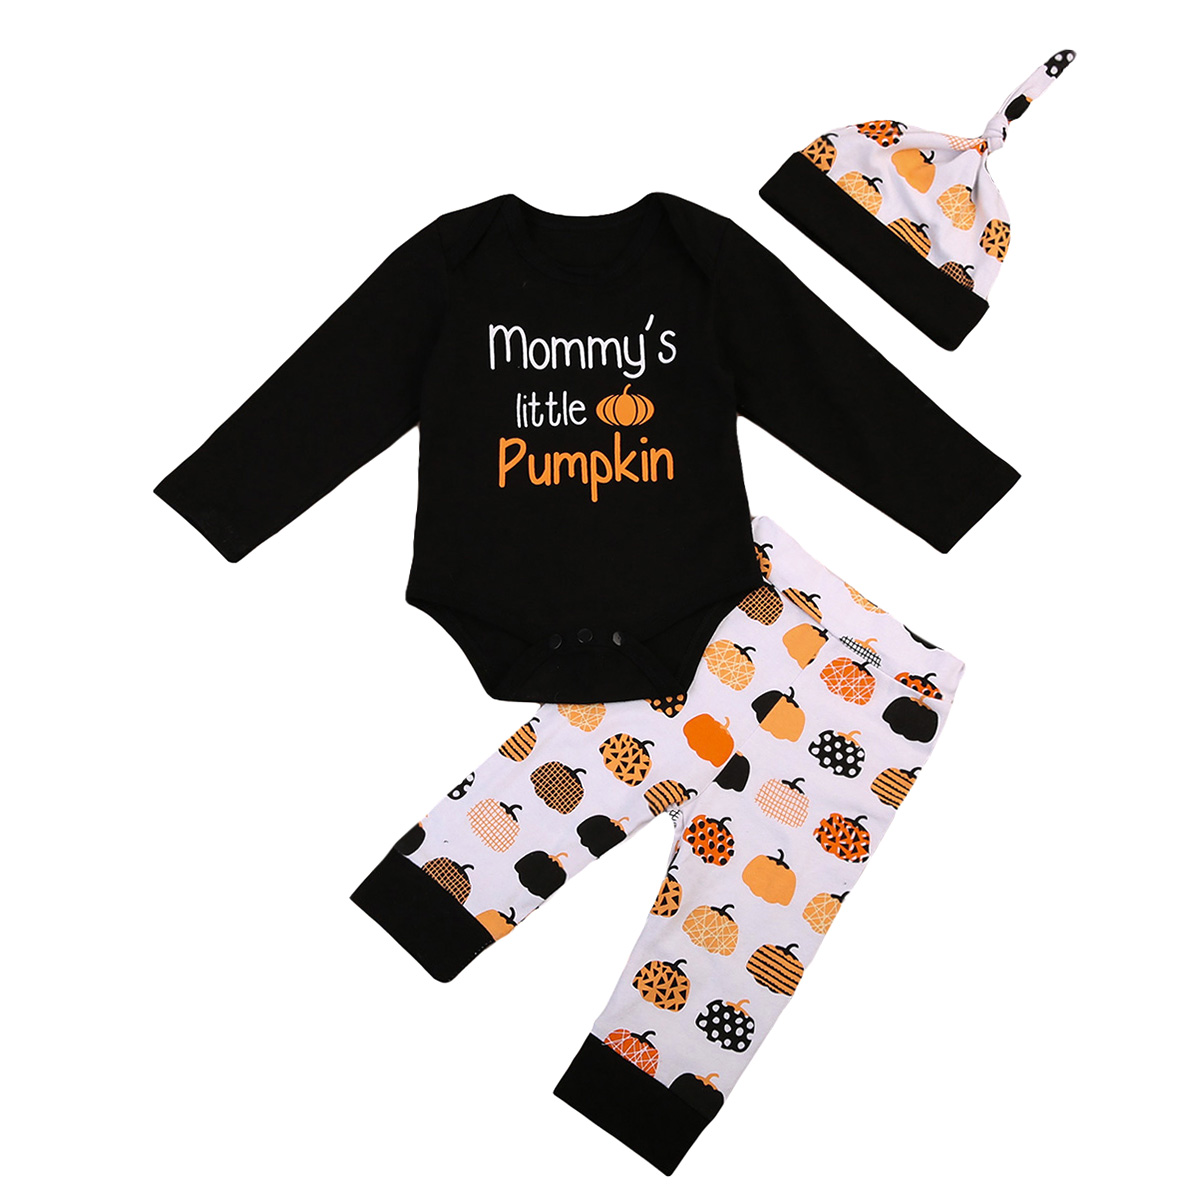 17 Cute Halloween Newborn Baby Boys Girls Winter Clothes Long Sleeve Romper Pants Leggings Cotton Pumpkin Print Outfit 3pcs 2